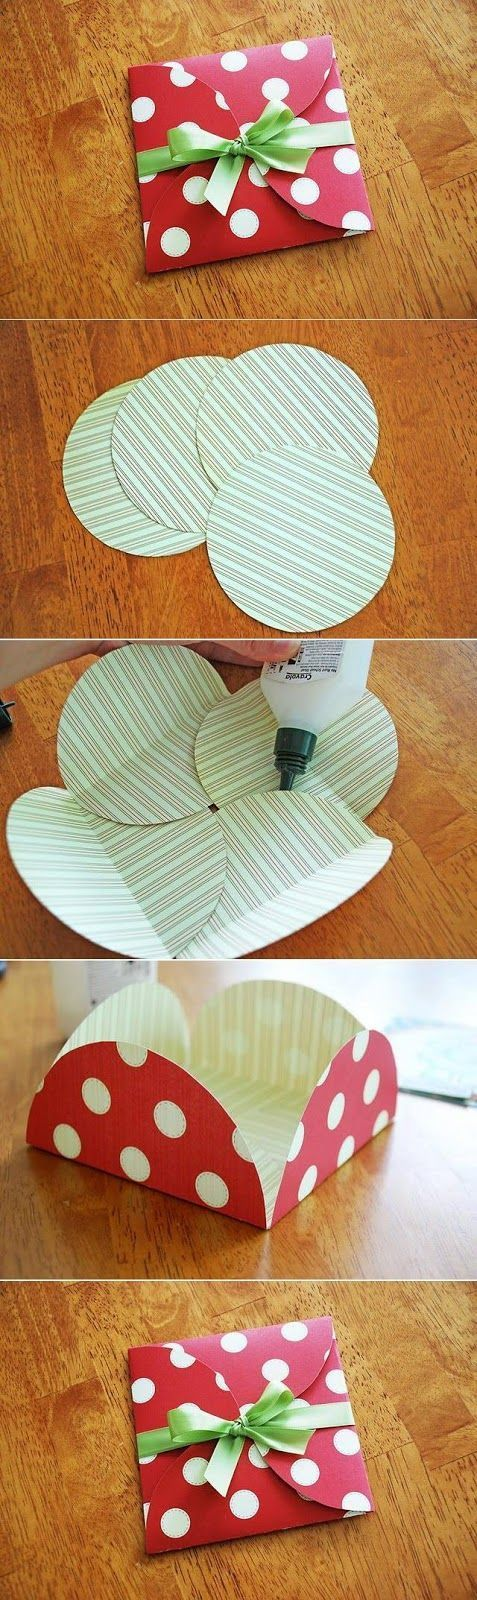 DIY Simple Envelope Just 4 Circles, easy to modify to any size!